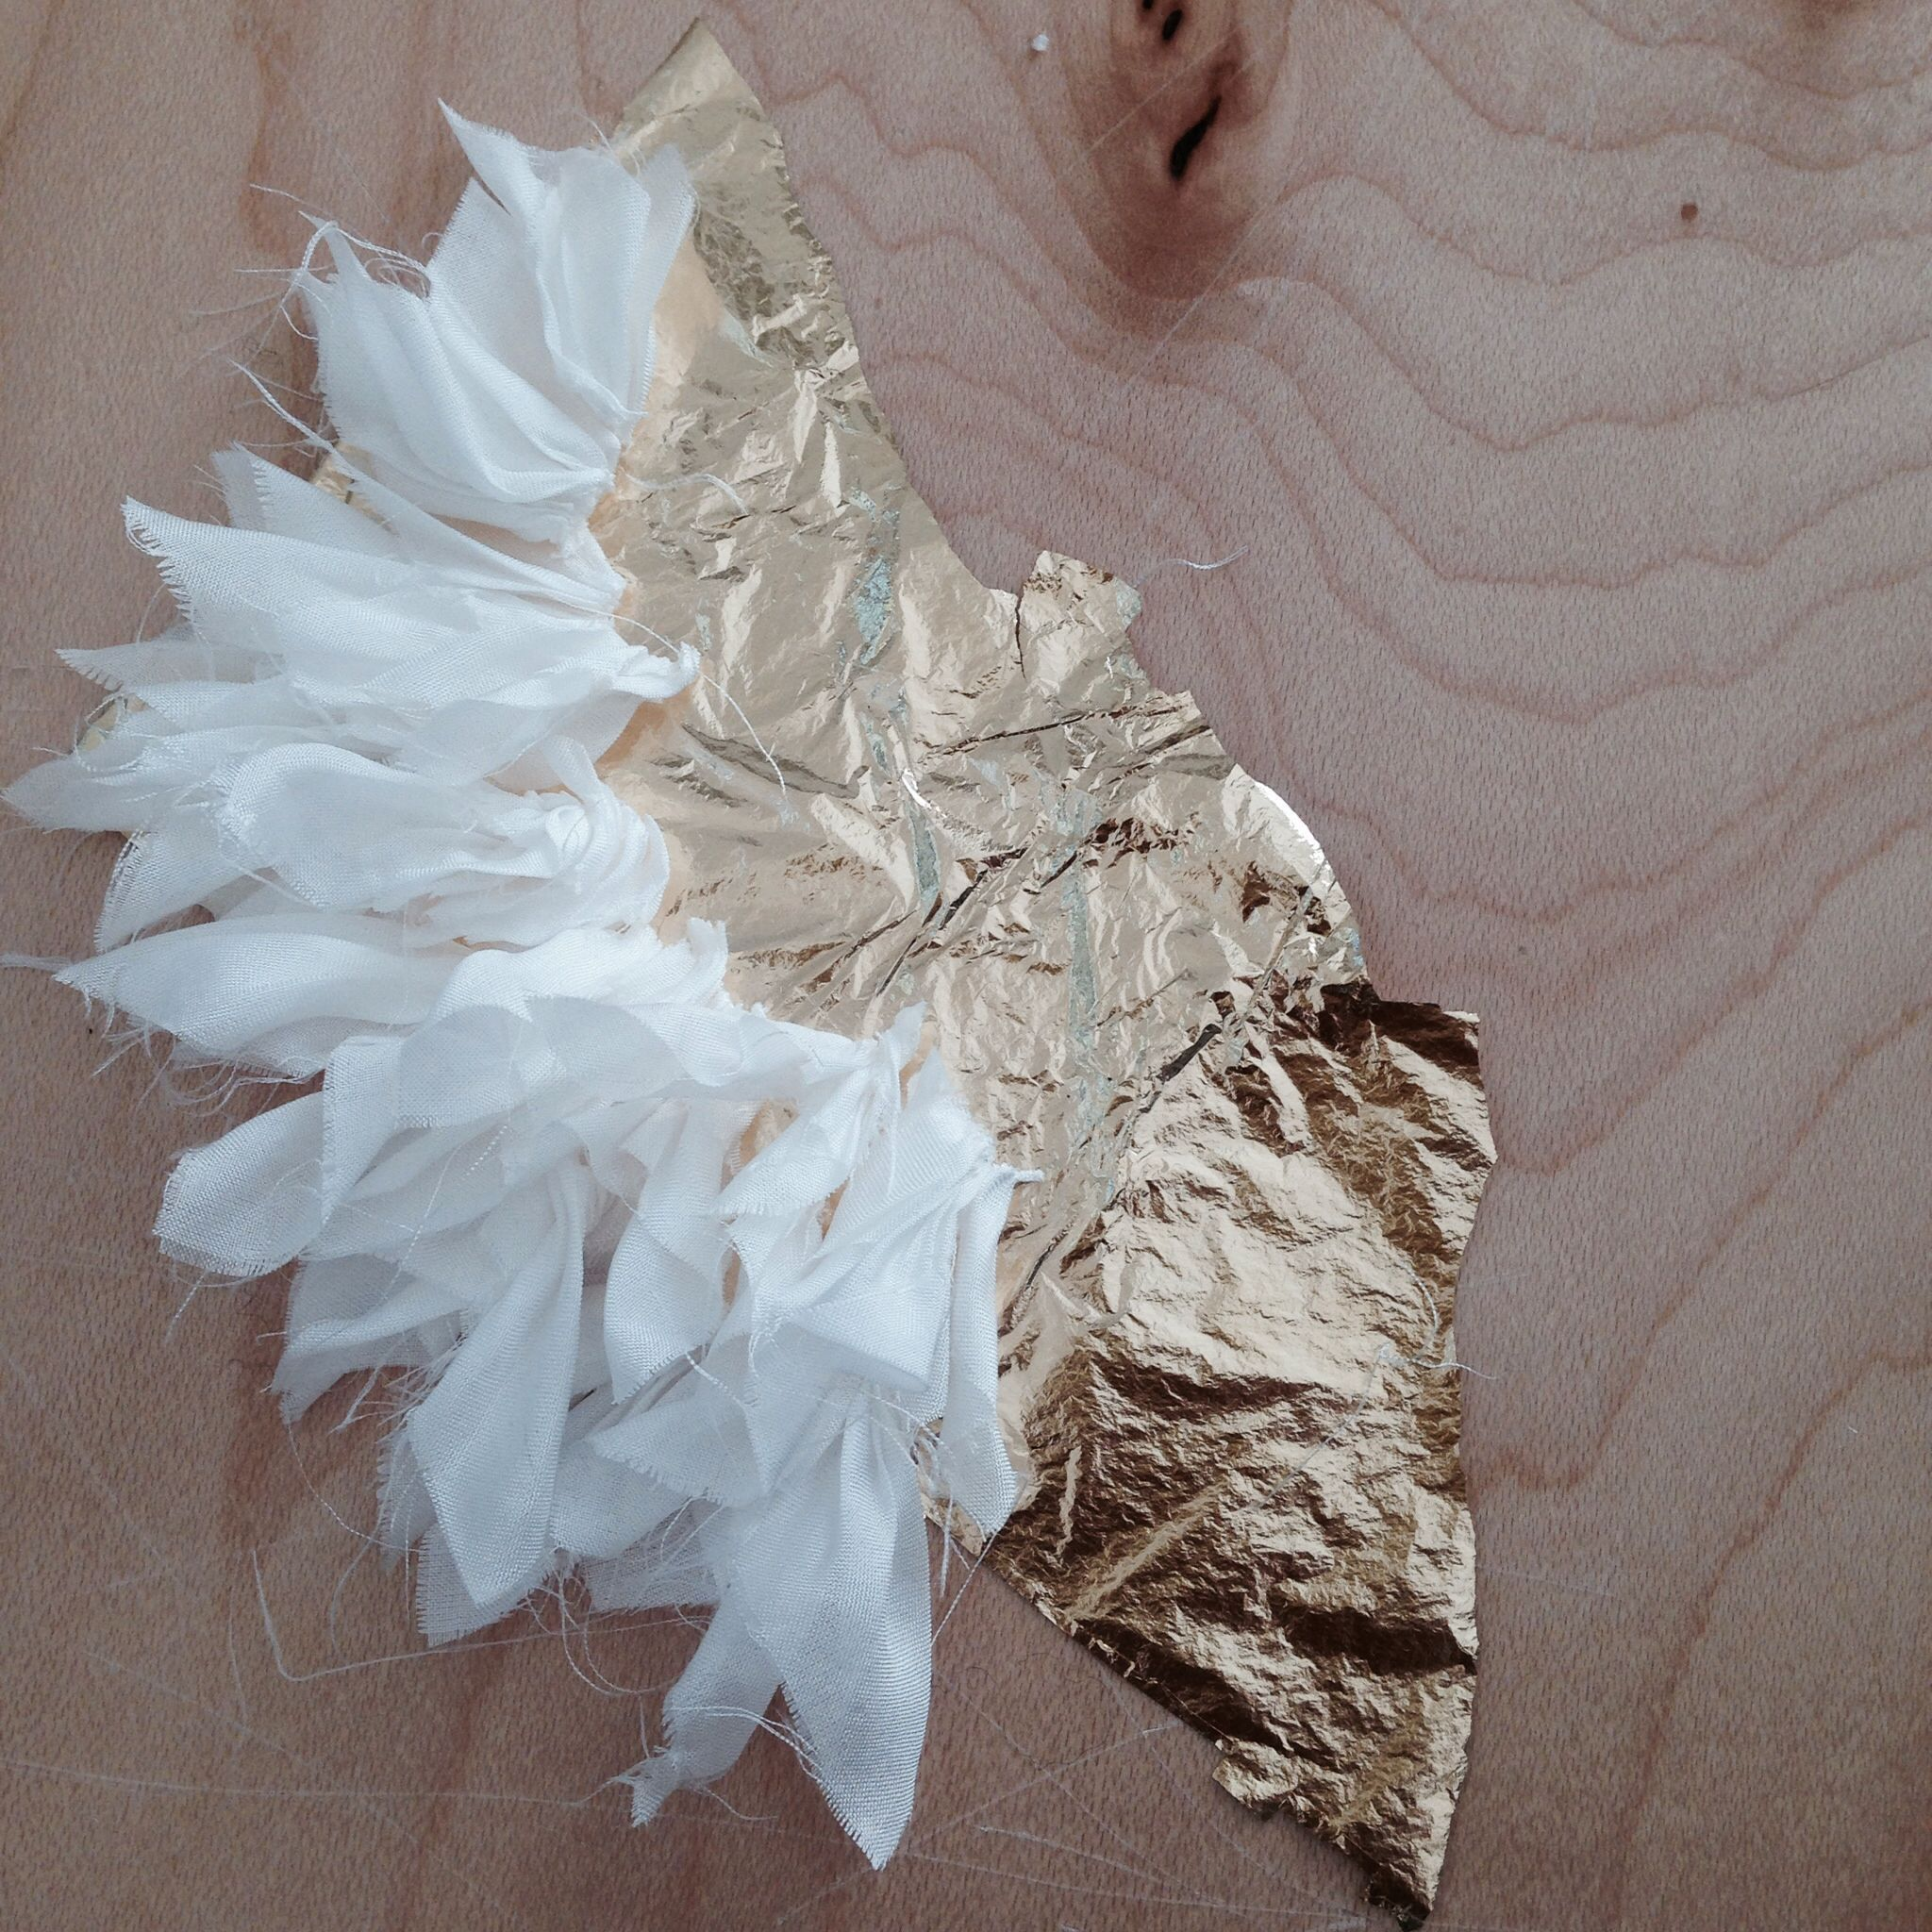 Gold leaf, bound and set silk pieces. Hair pin, bridal piece in the making.